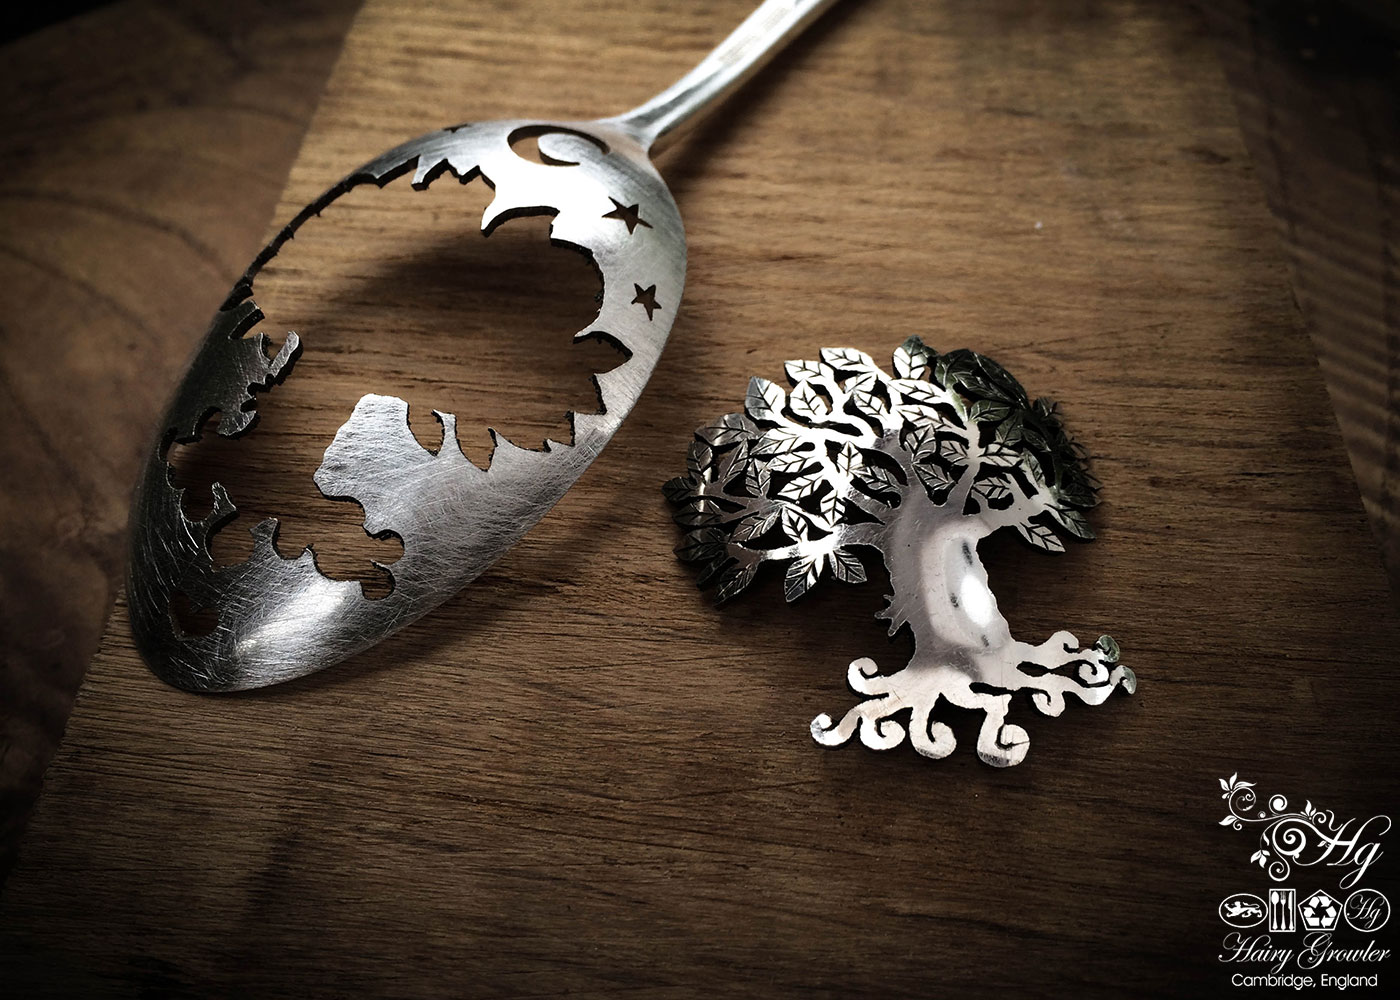 handmade and upcycled spoon tree-of-life brooch made from spoon